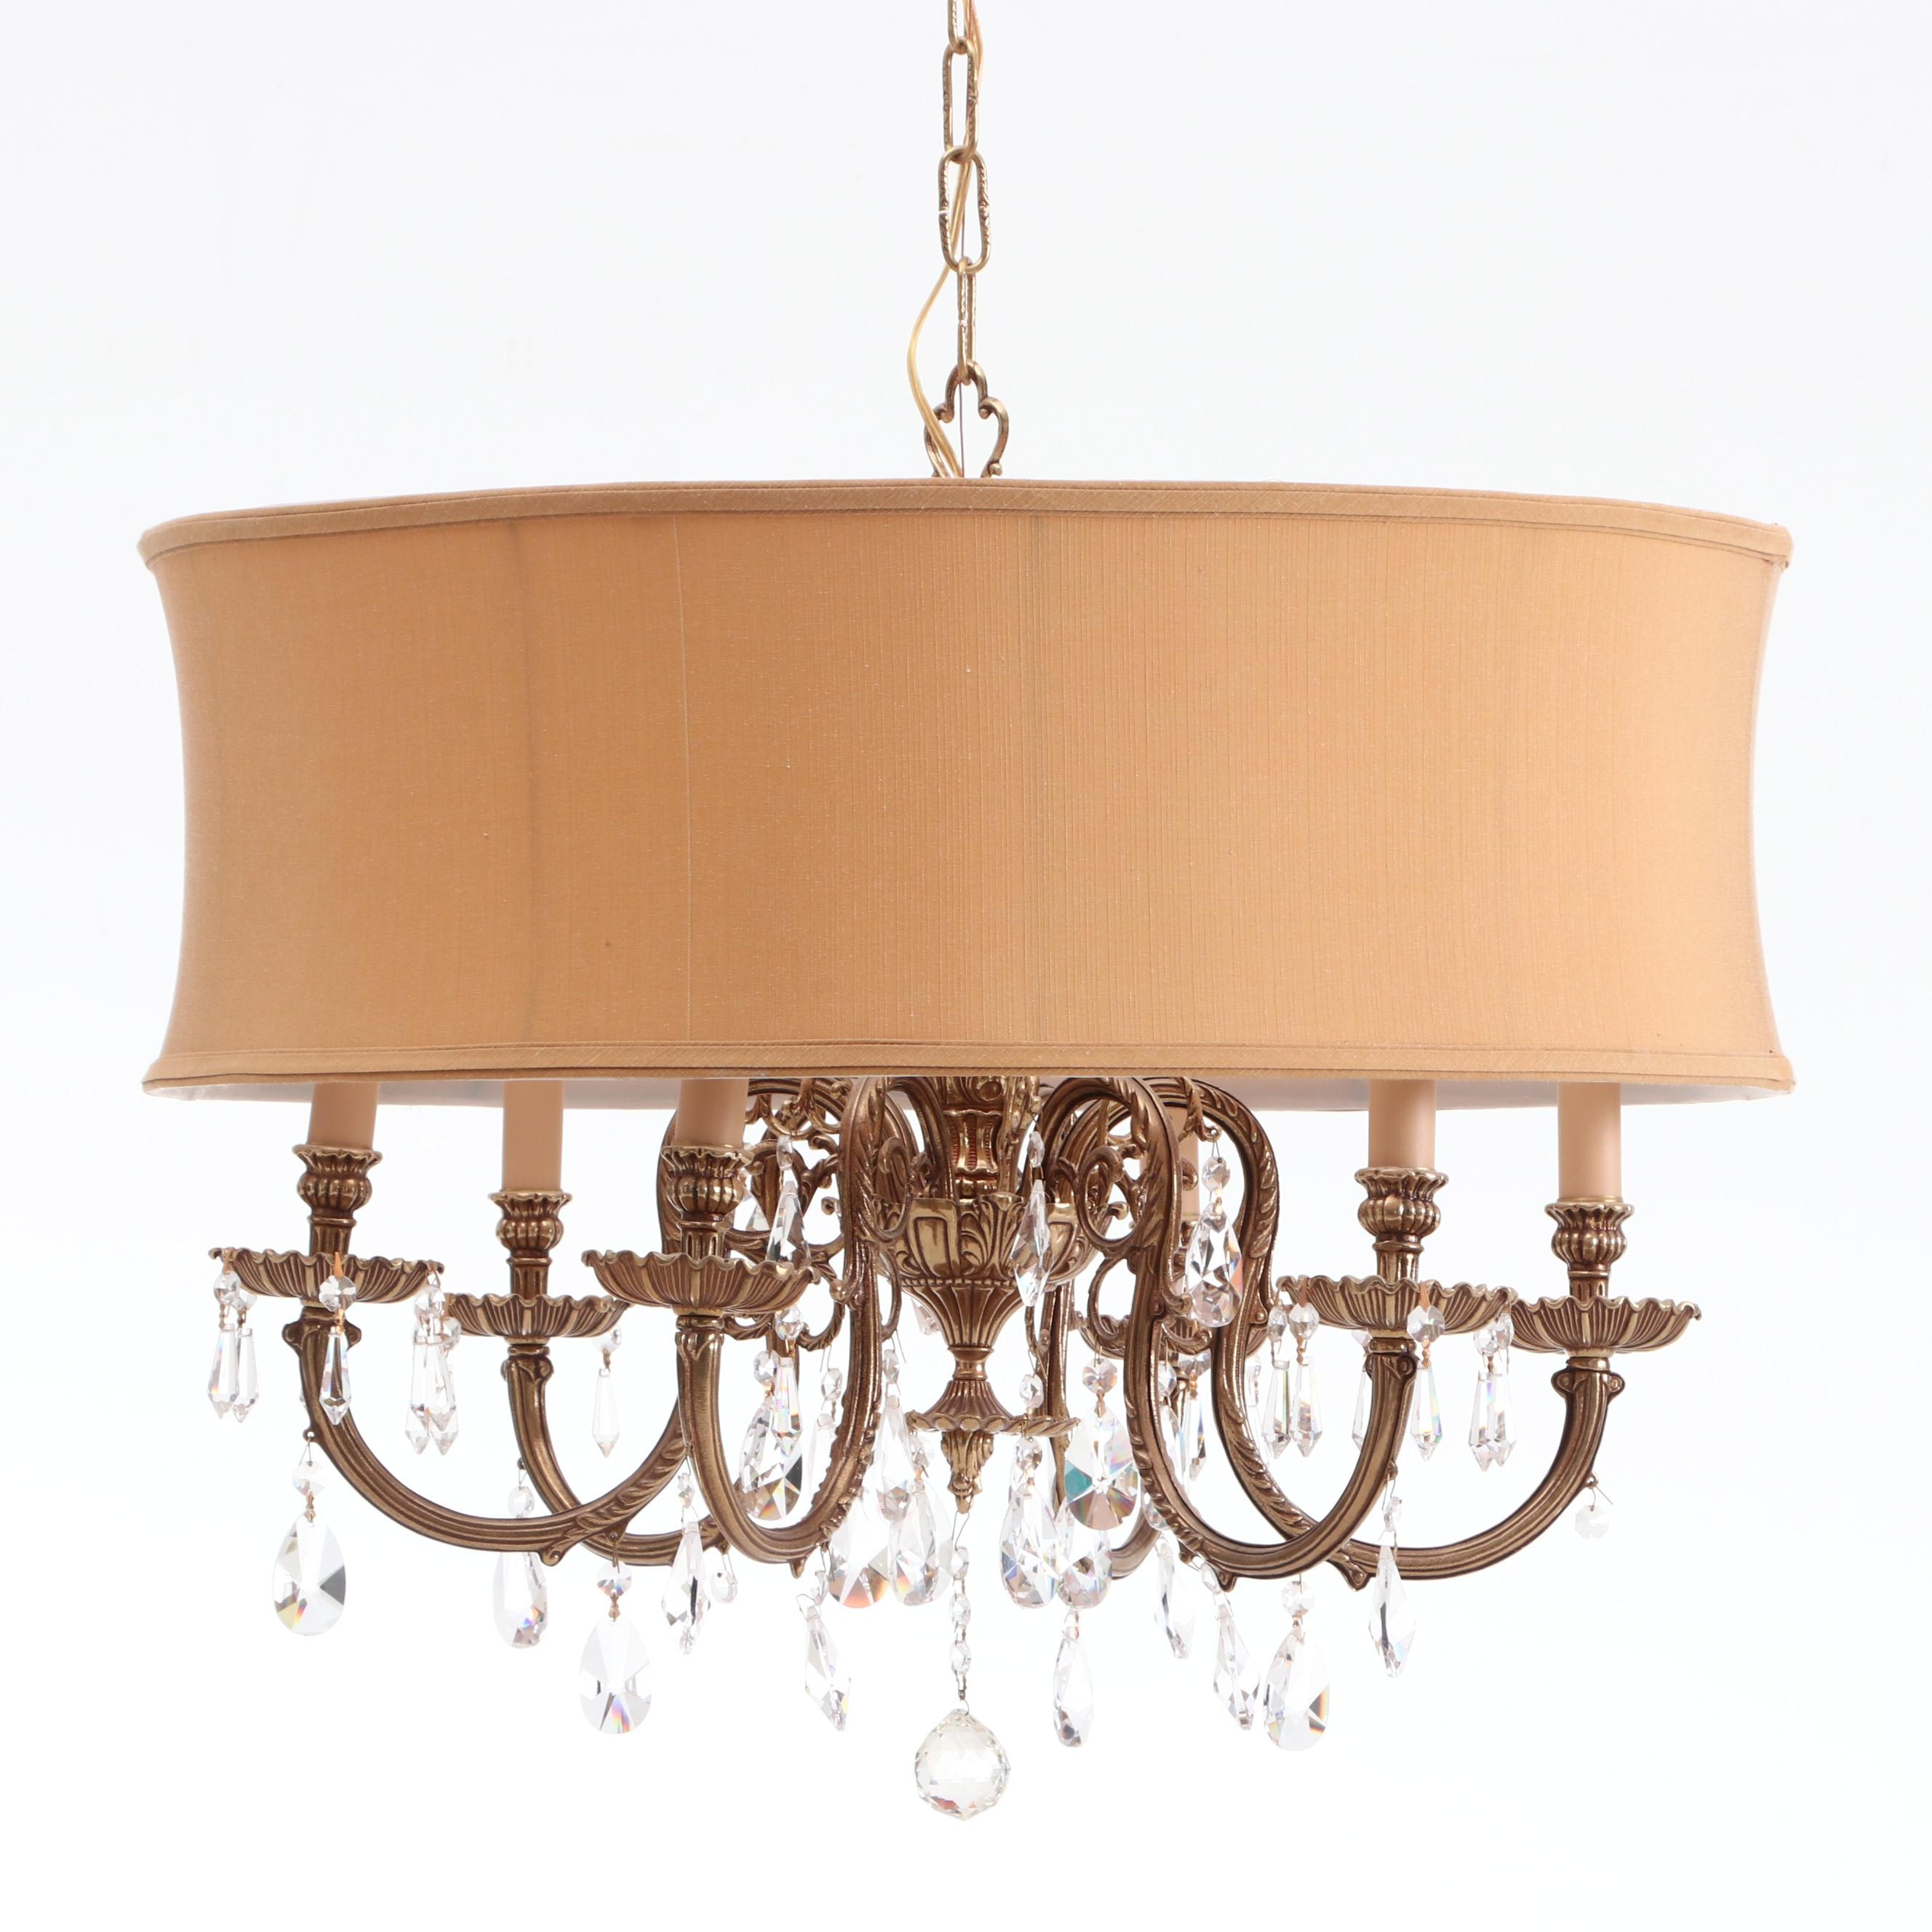 Tov Six-Light Gold Tone Metal Chandelier with Crystal Prisms and Drum Shade